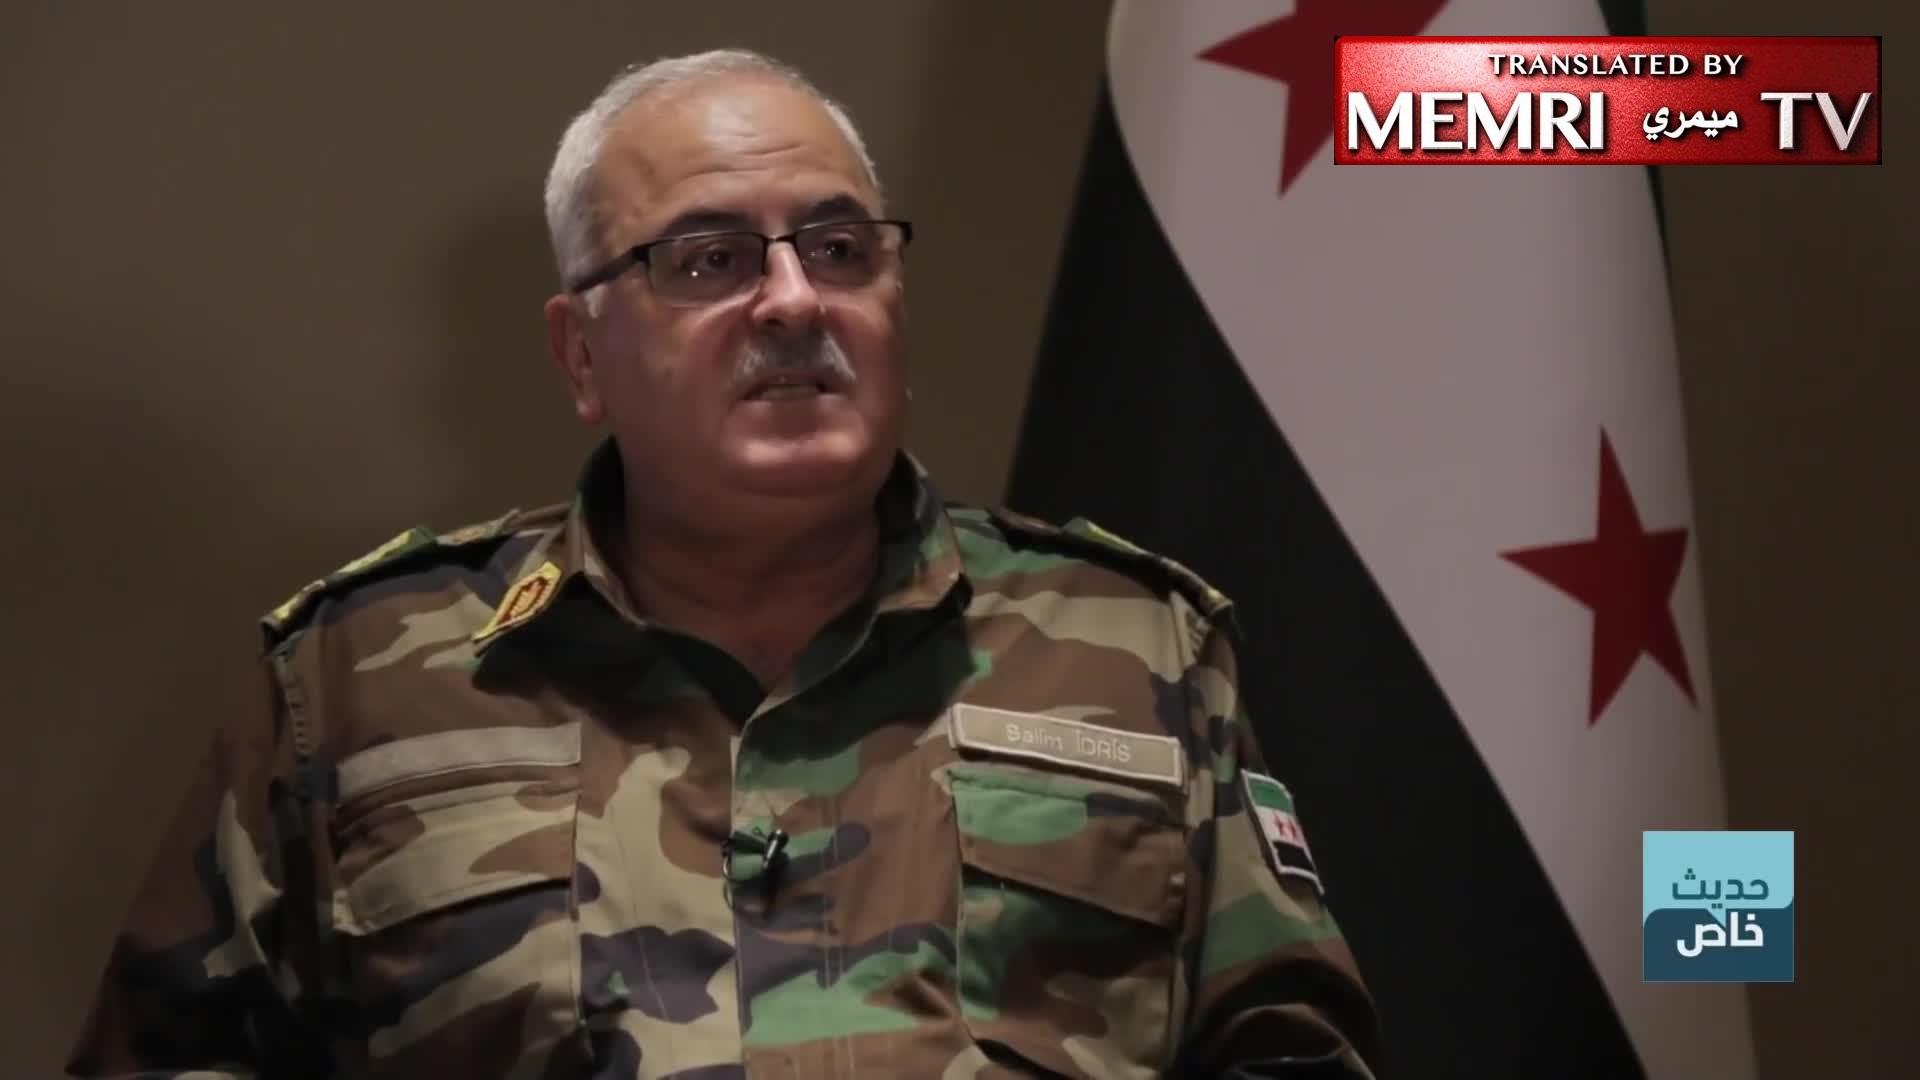 Syrian Opposition's Interim Government Defense Minister General Salim Idris: Kurds in Northern Syria Have Auschwitz and Buchenwald-Like Camps